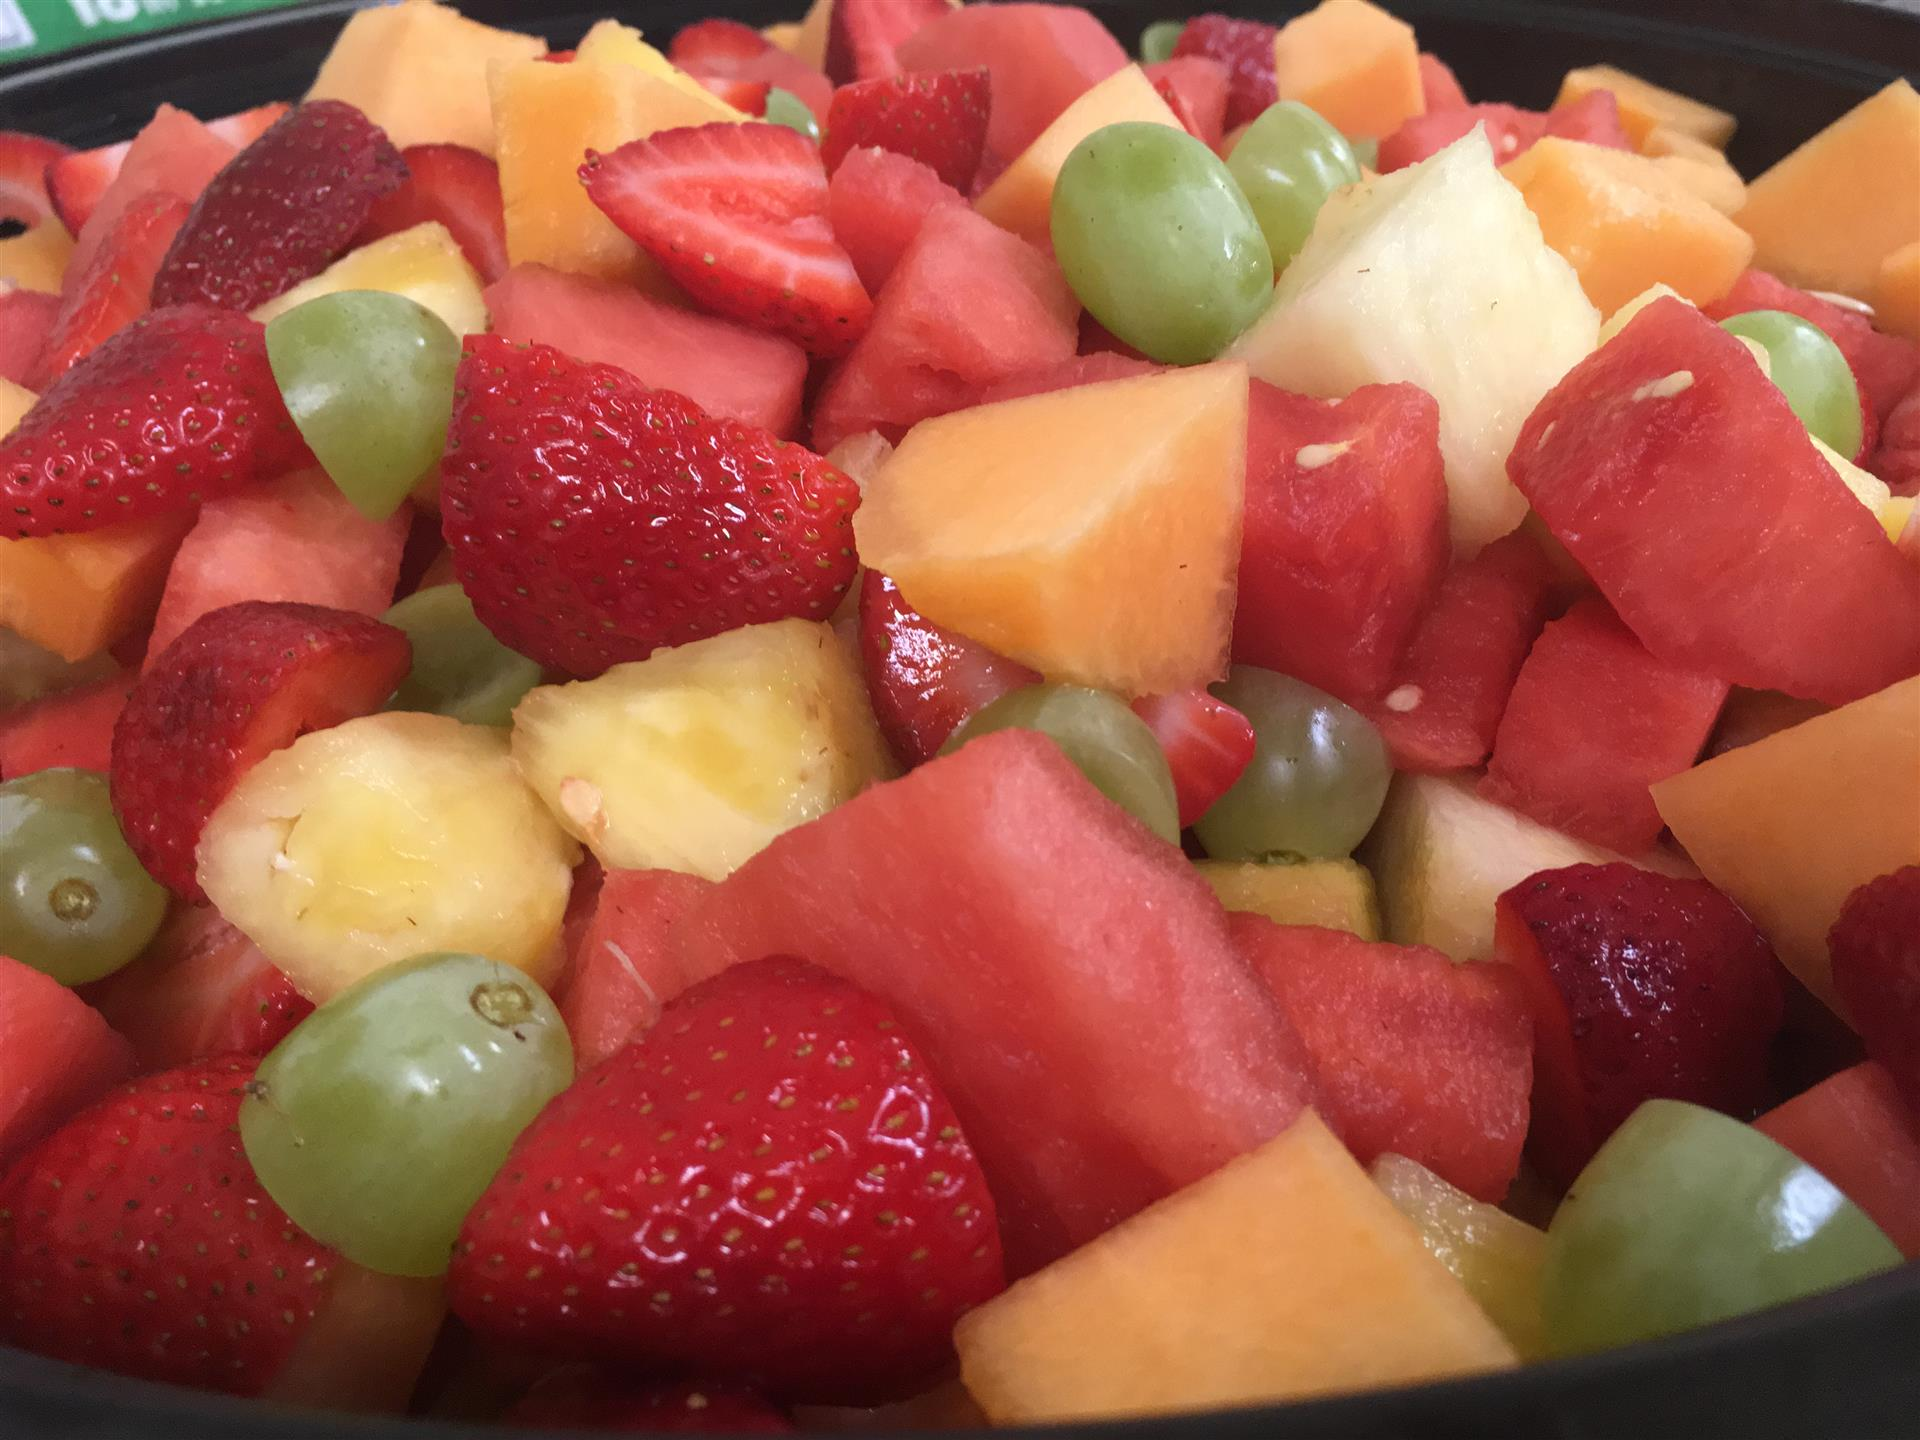 fresh fruit bowl with cantaloupe, watermelon, strawberries, grapes and pineapple